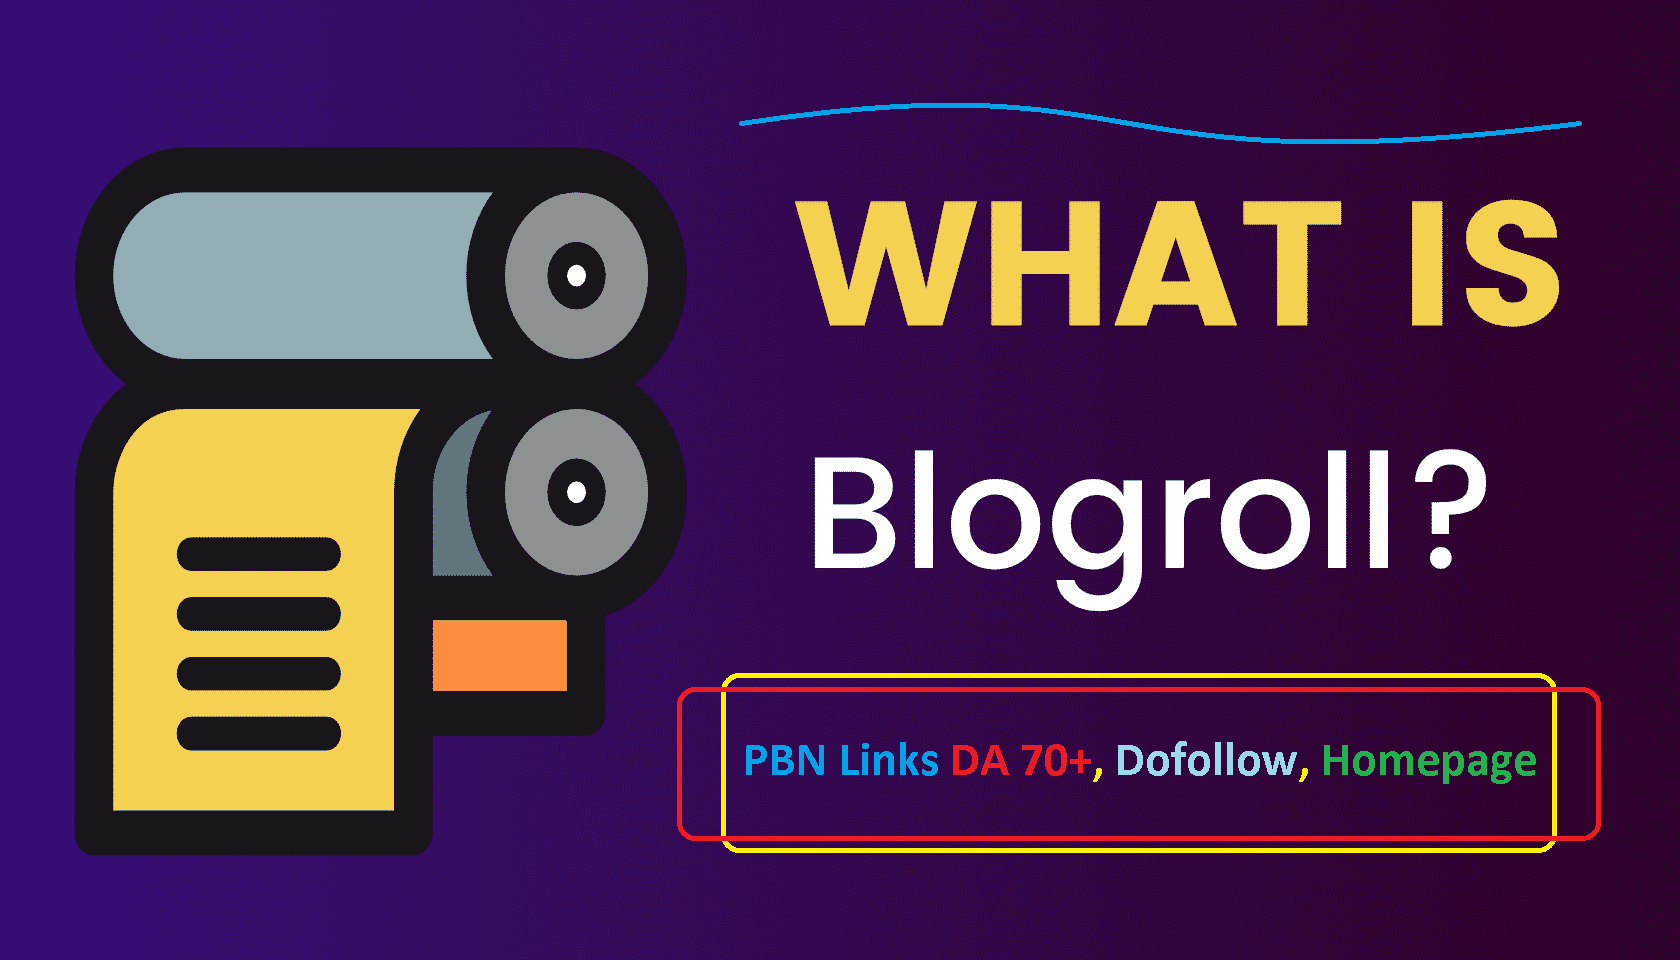 Get 7 PBN Links DA 70+ Homepage, Dofollow, Permanent